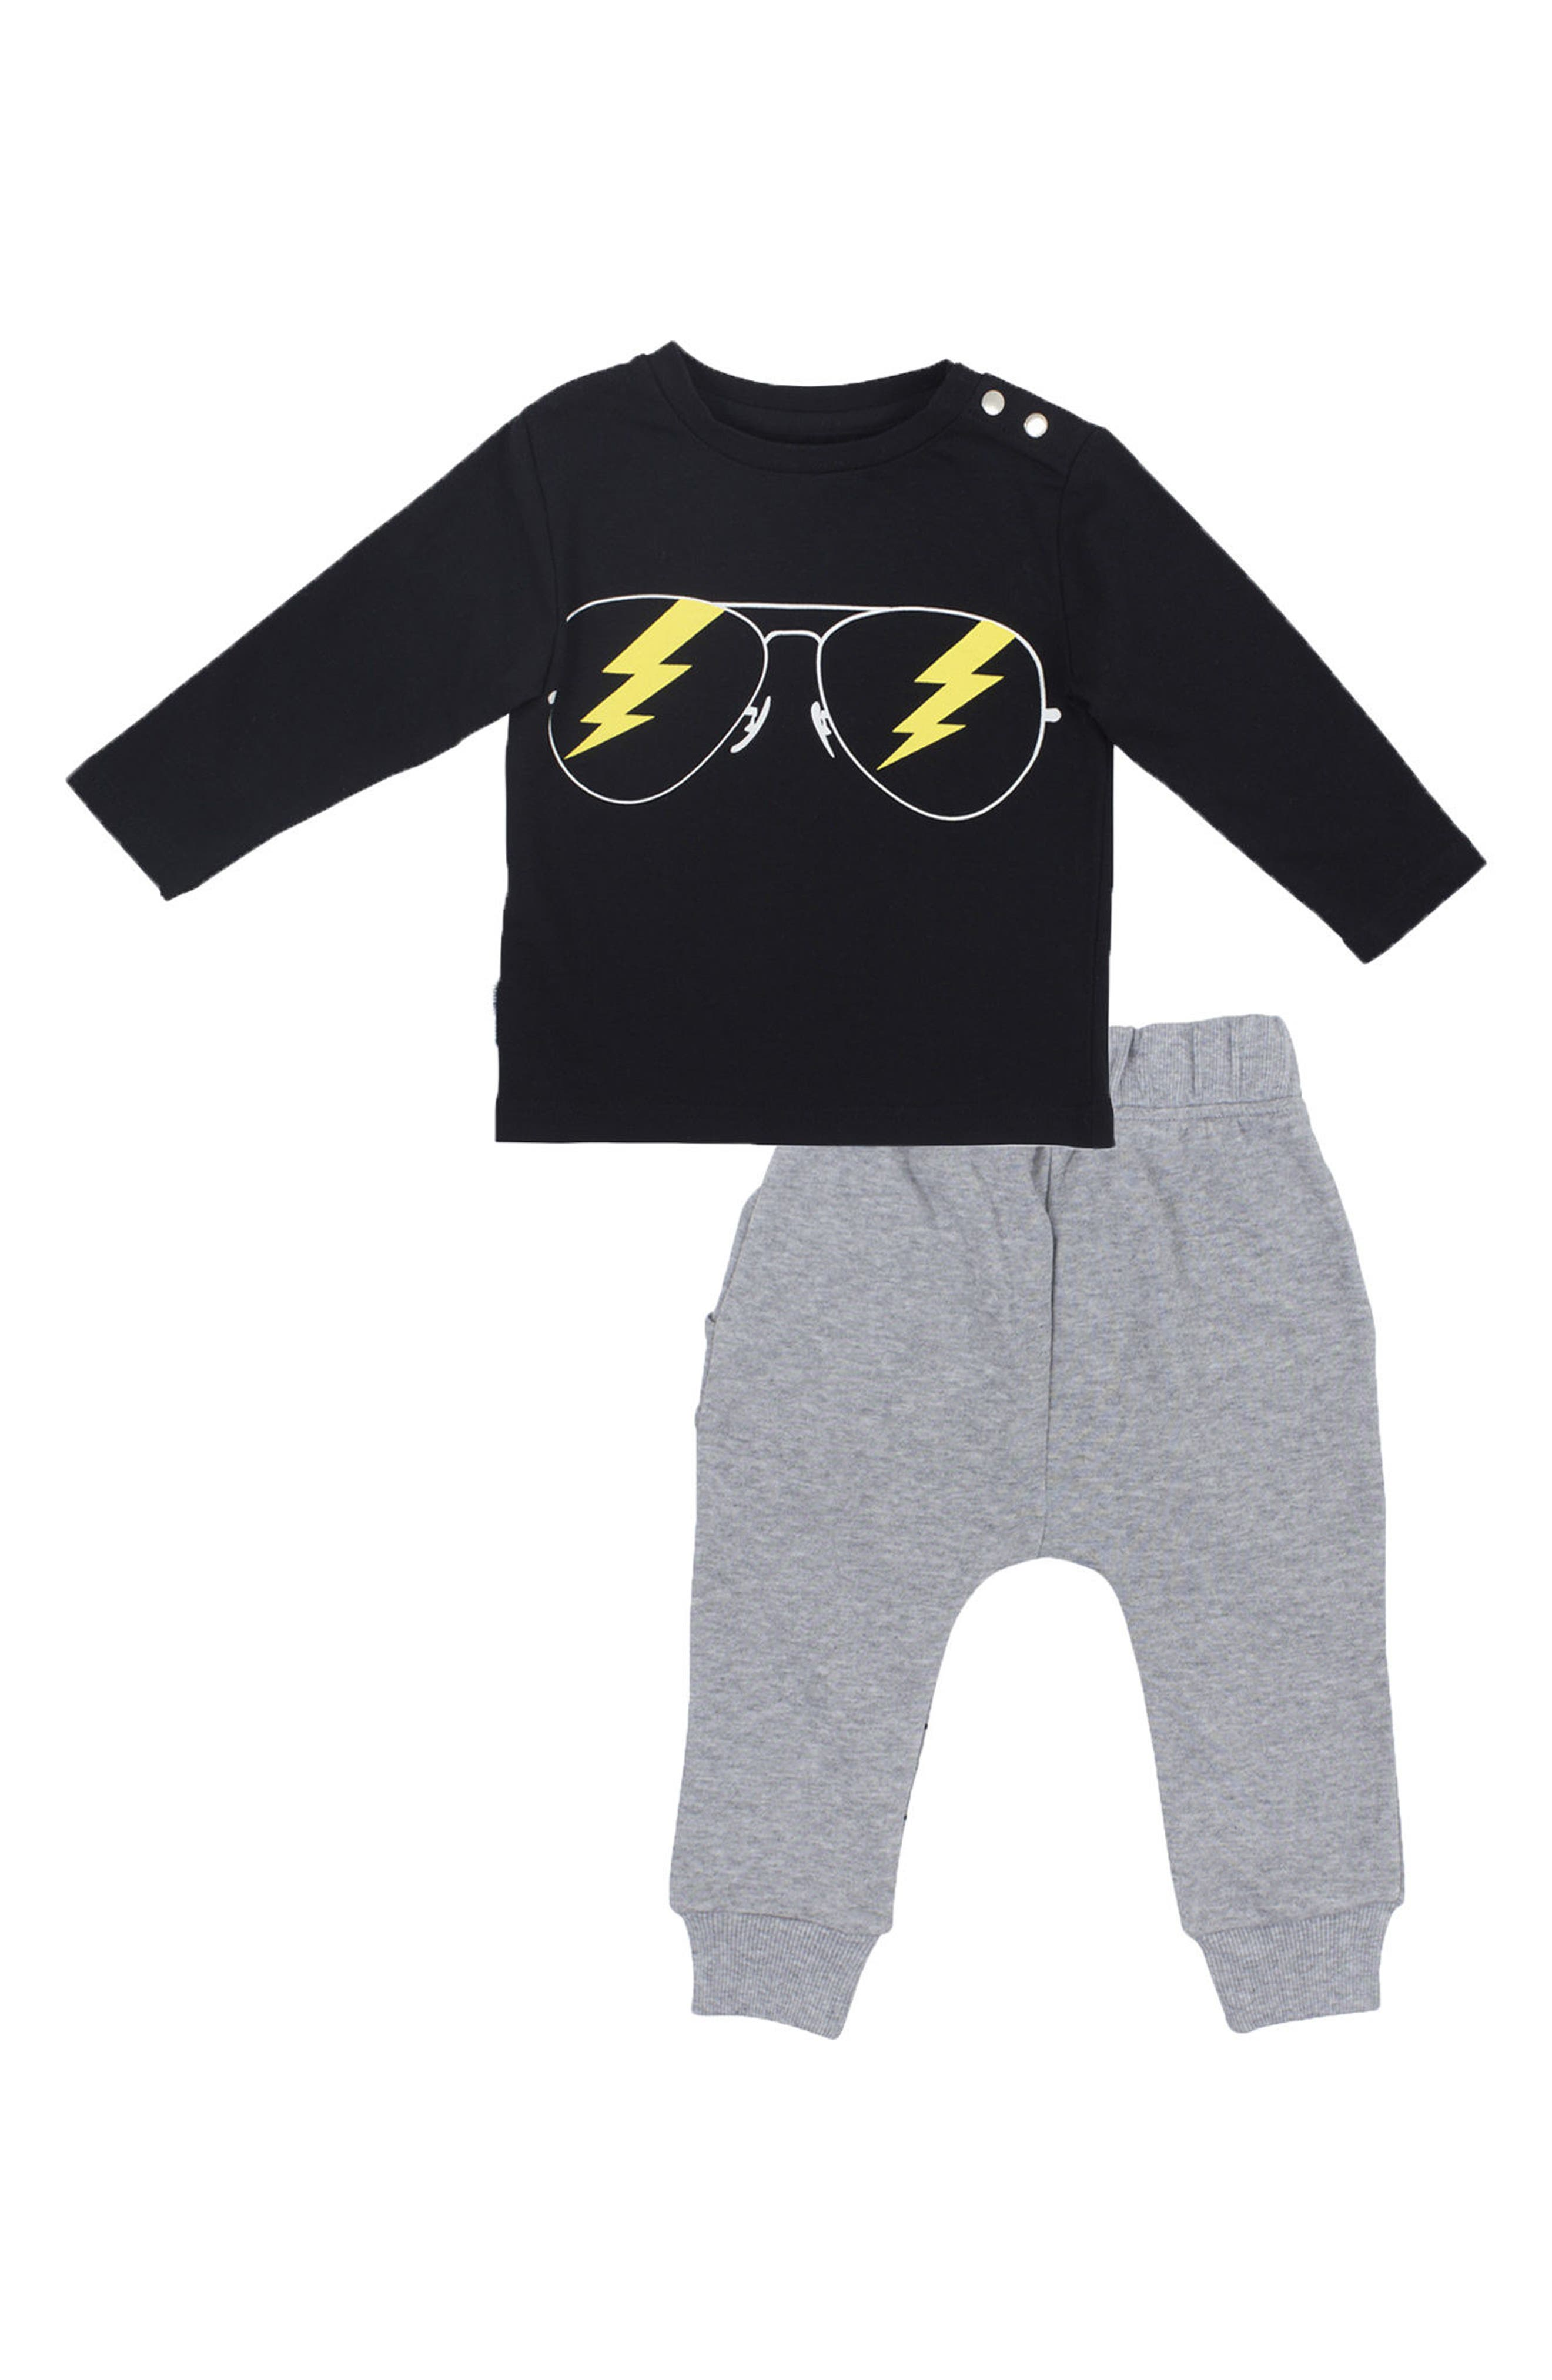 Rockstar T-Shirt & Jogger Pants Set,                             Alternate thumbnail 2, color,                             009